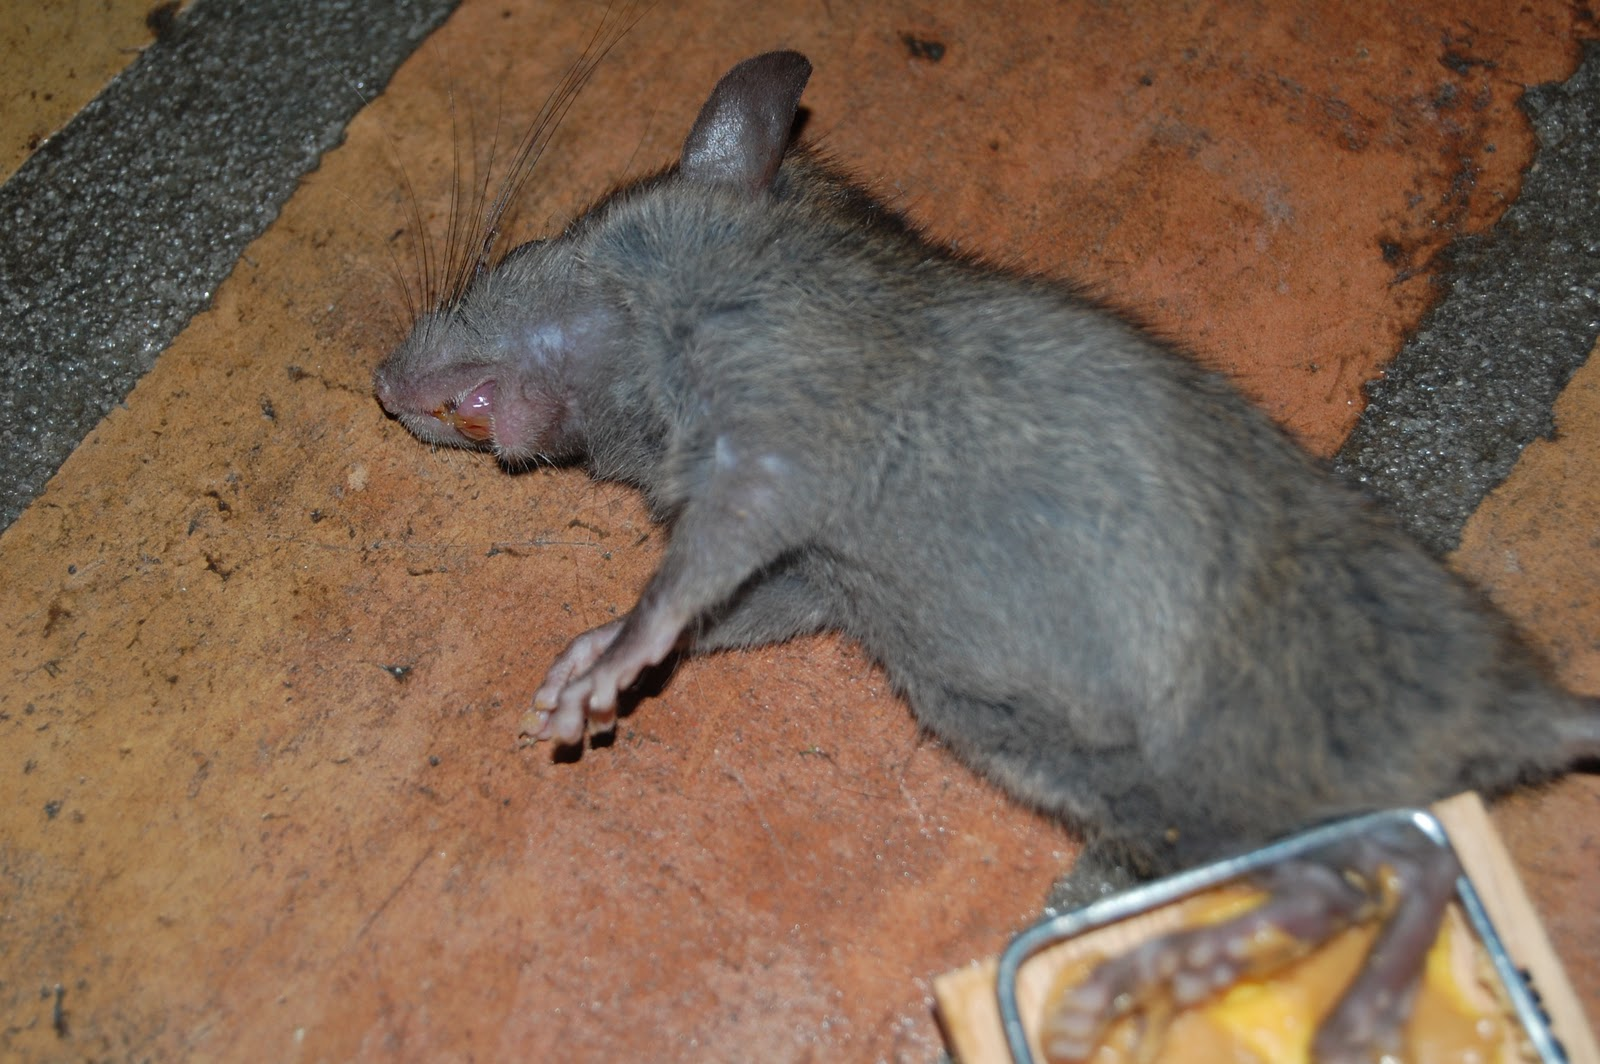 All city animal trapping rat control in riverside california call all city animal trapping and - Trappen rots ...